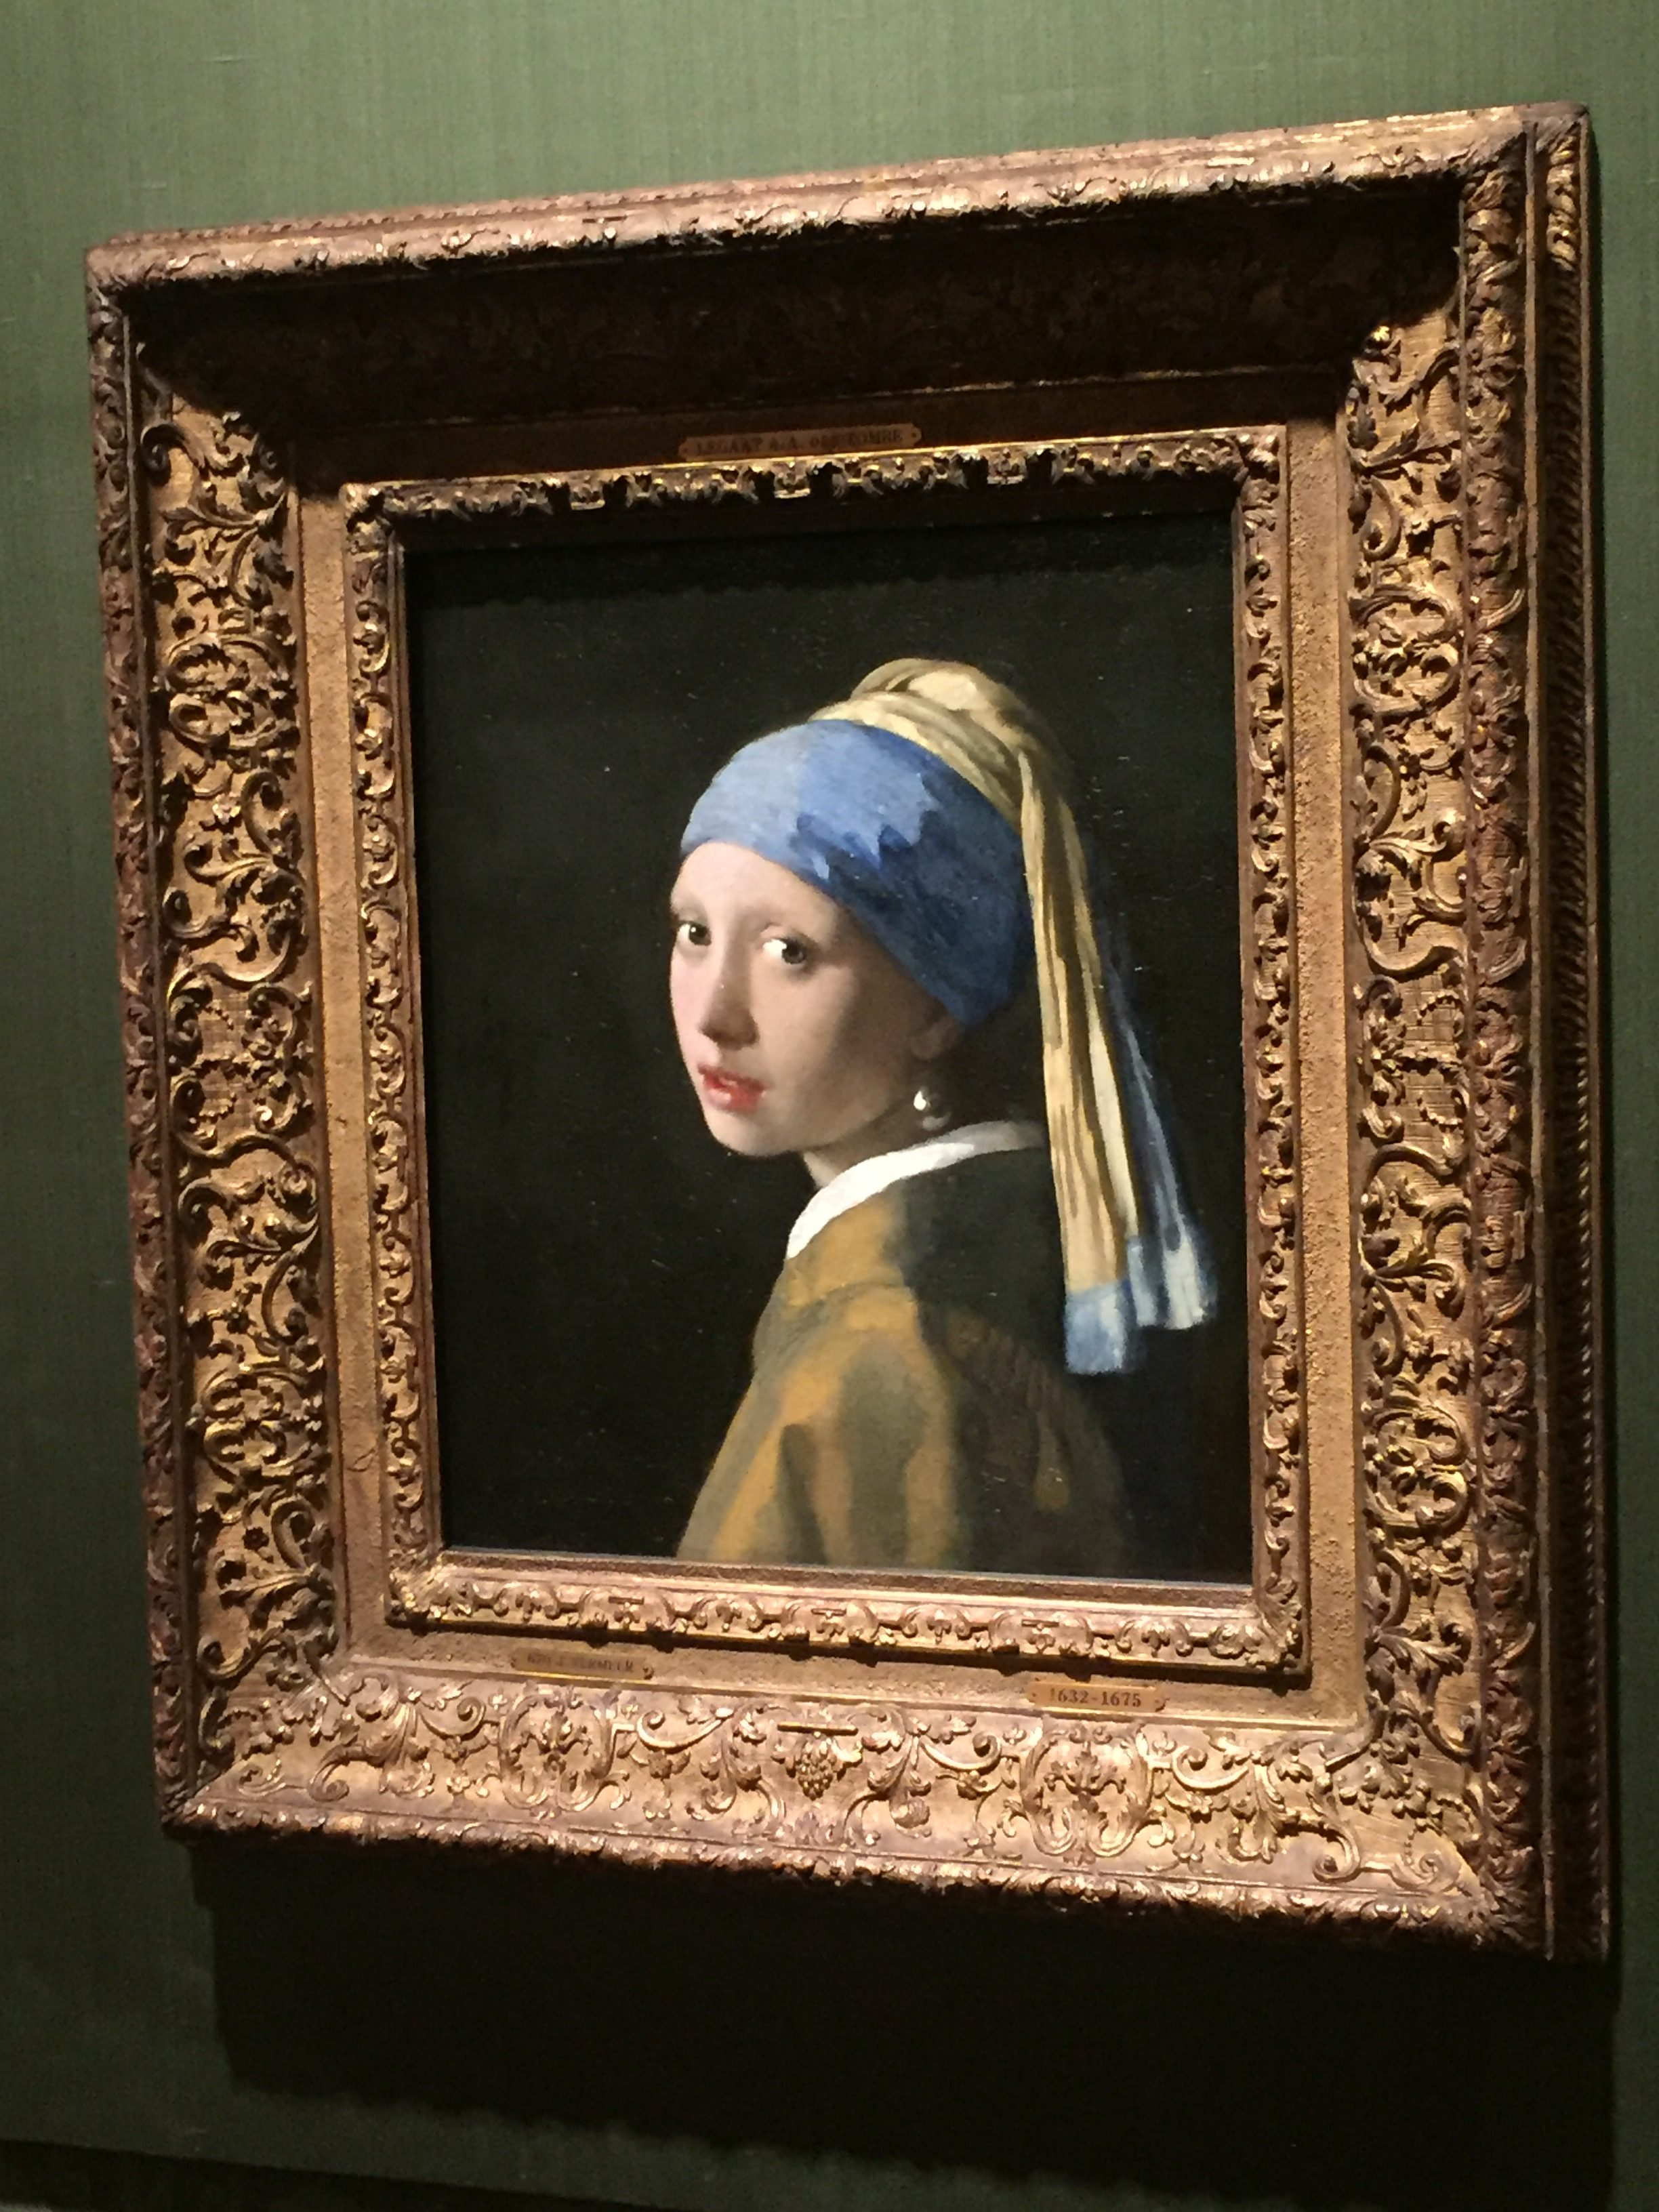 Travel Tips: Mauritshuis, Vermeer's 'Girl with a Pearl Earring'